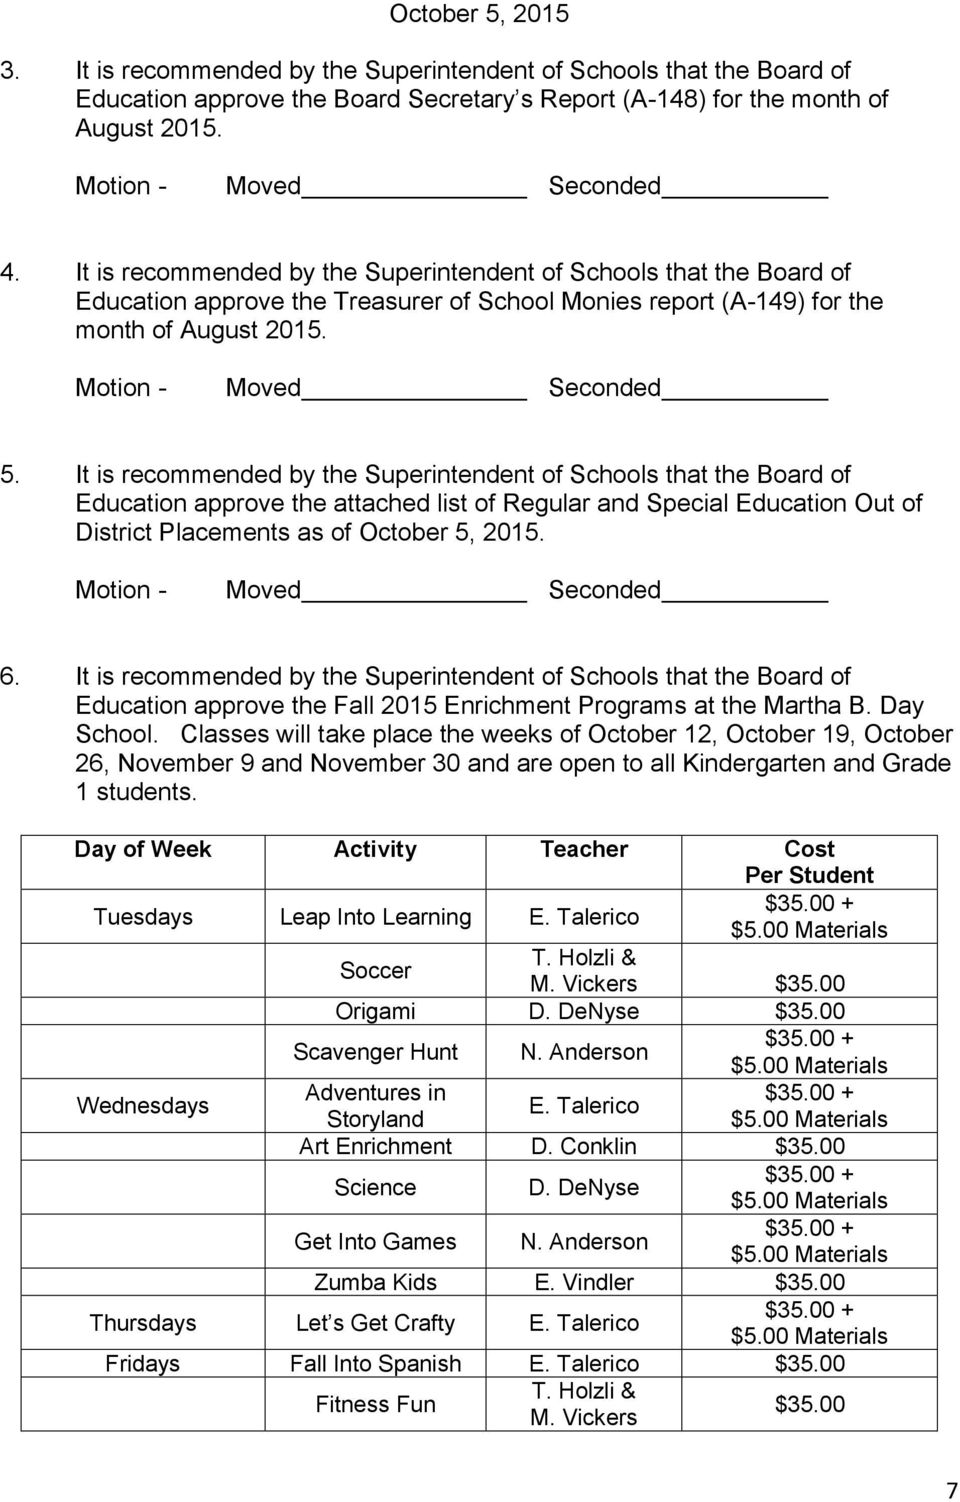 It is recommended by the Superintendent of Schools that the Board of Education approve the attached list of Regular and Special Education Out of District Placements as of October 5,. 6.